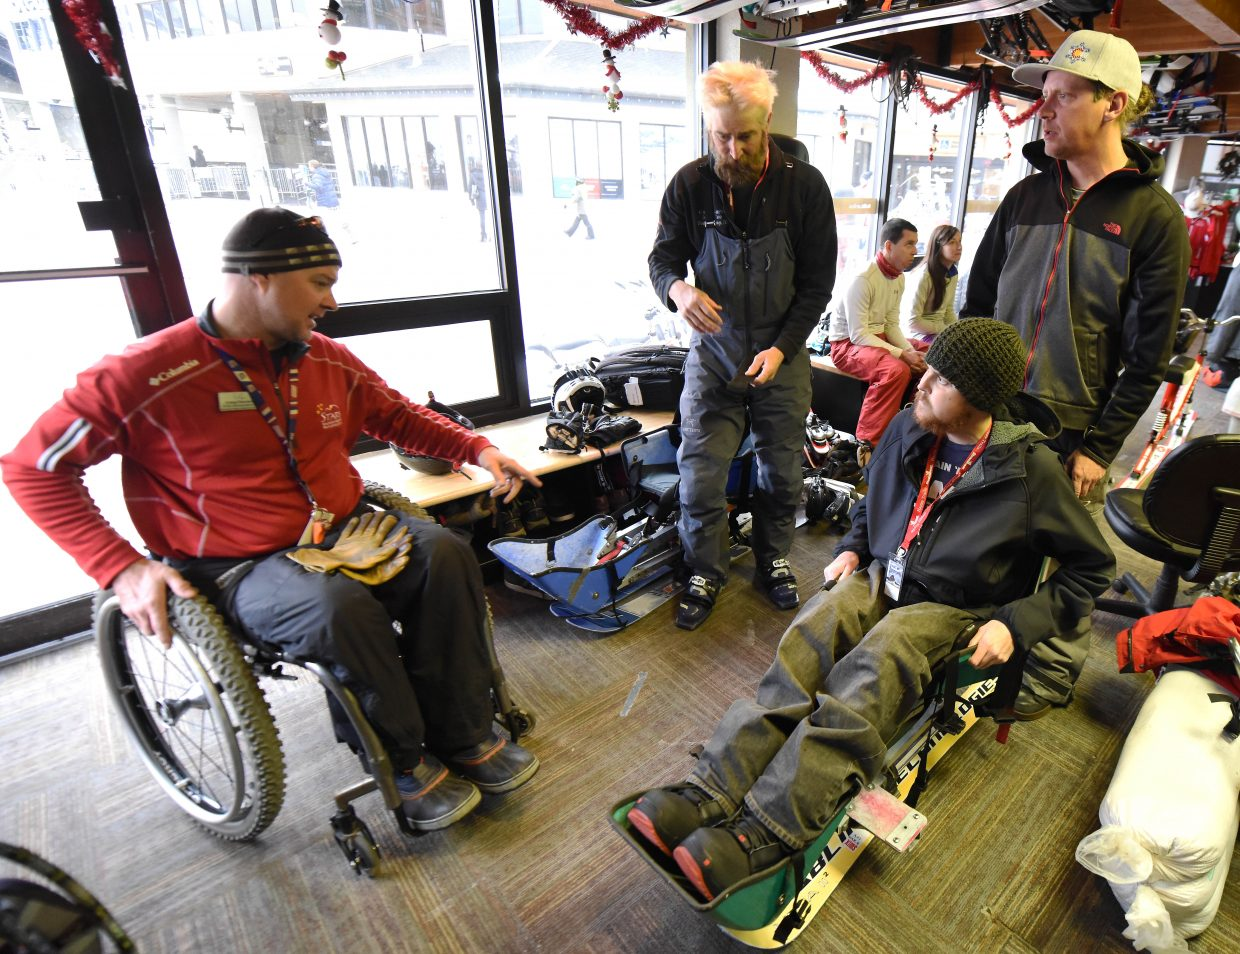 Craig Kennedy, left, helps U.S. Marine Brett Kerkhof adjust to a sit ski in December at Steamboat Ski Area. Kennedy worked with STARS for six years before moving on this spring.